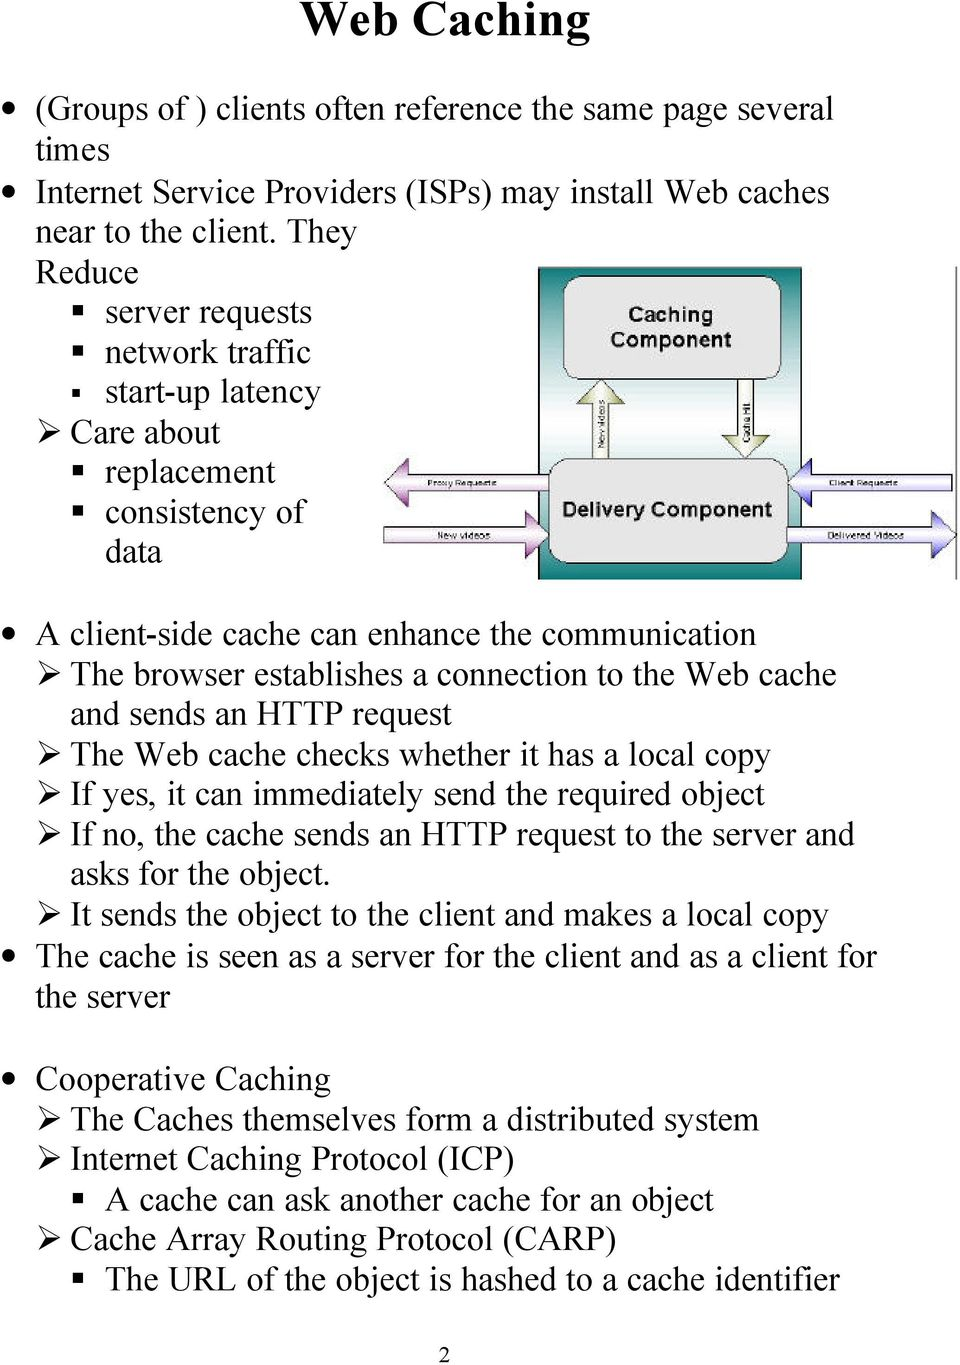 Web cache and sends an HTTP request The Web cache checks whether it has a local copy If yes, it can immediately send the required object If no, the cache sends an HTTP request to the server and asks